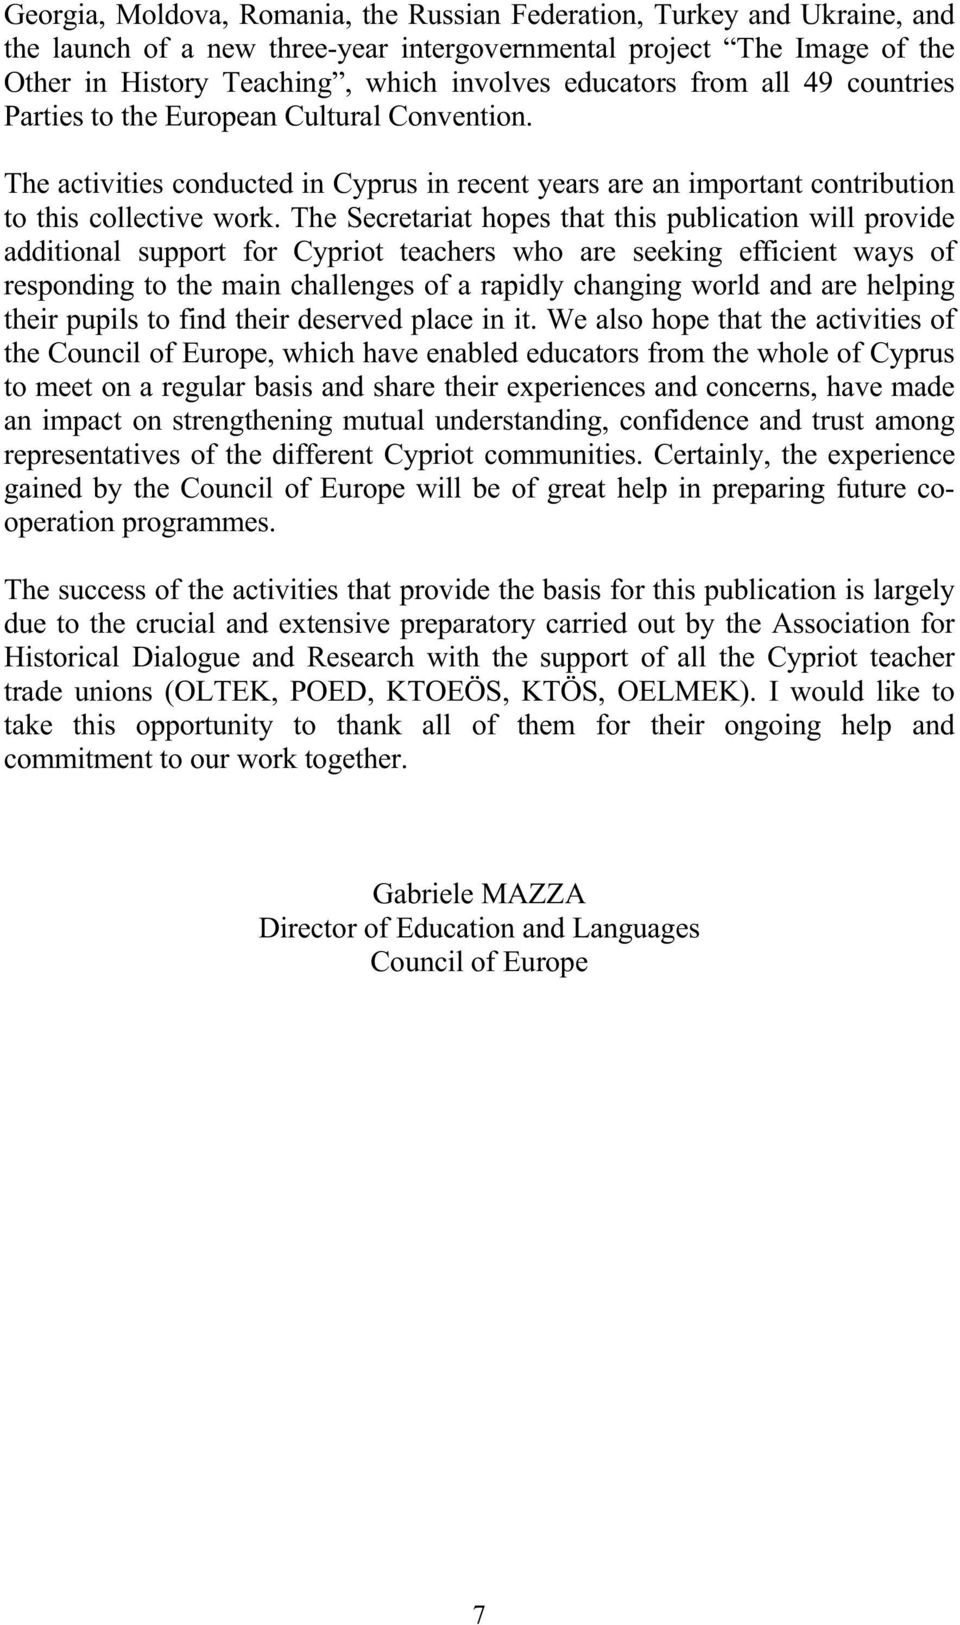 The Secretariat hopes that this publication will provide additional support for Cypriot teachers who are seeking efficient ways of responding to the main challenges of a rapidly changing world and